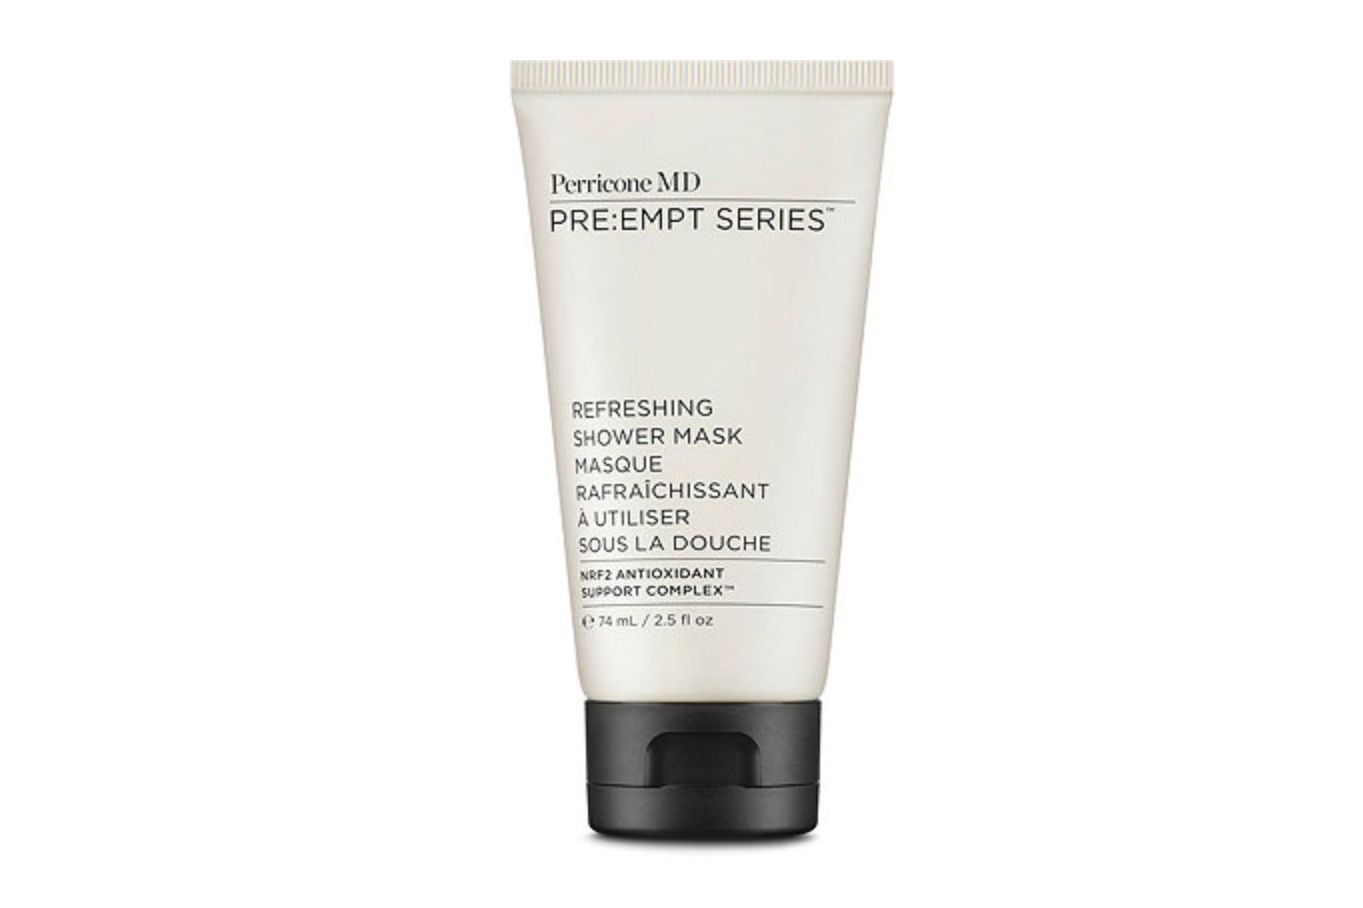 Perricone MD Preempt Series Refreshing Shower Mask